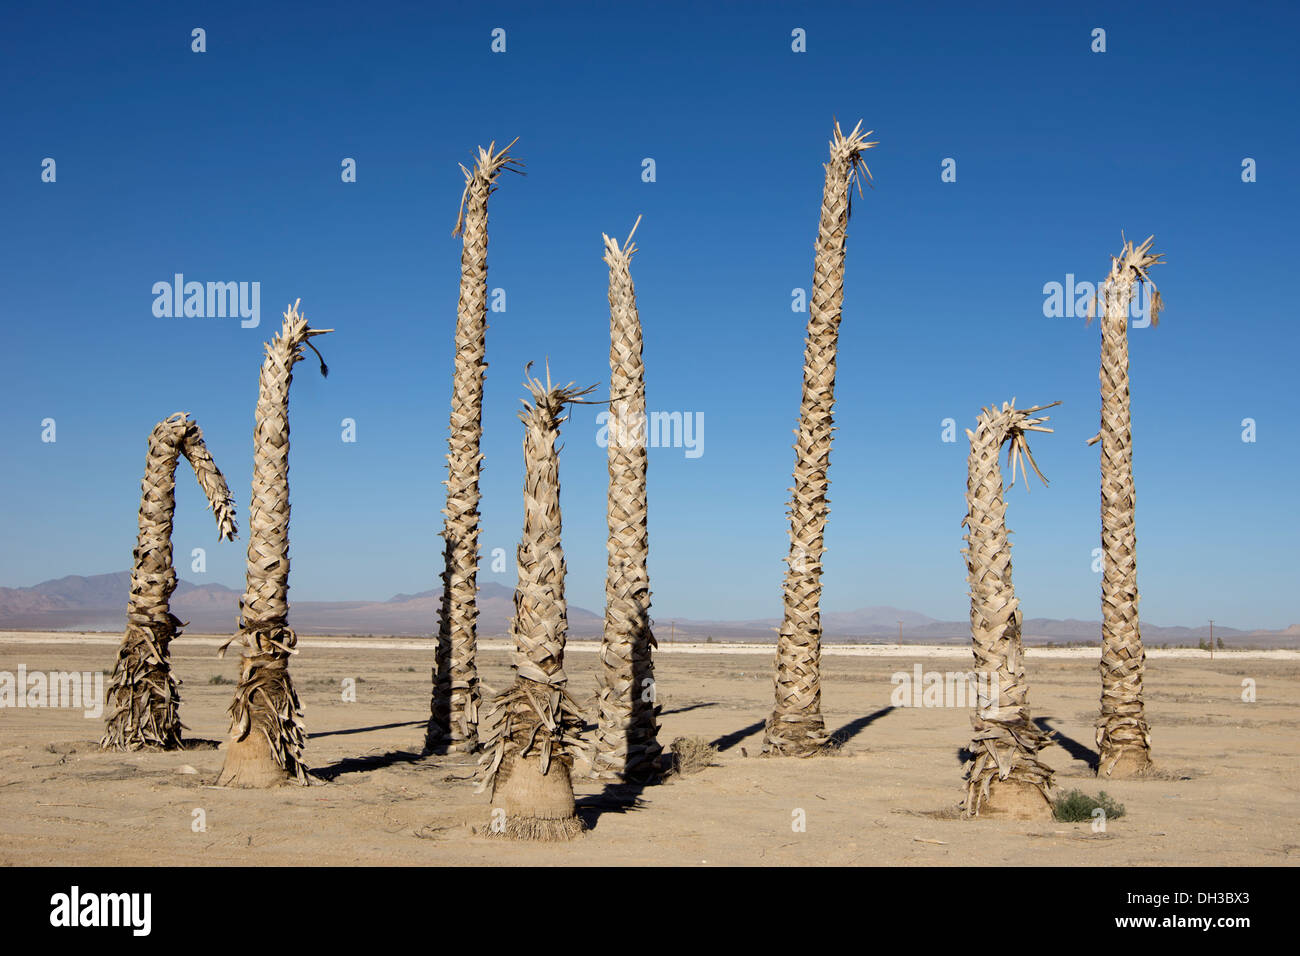 Trunks of dead palm trees in Southeast California, USA. - Stock Image